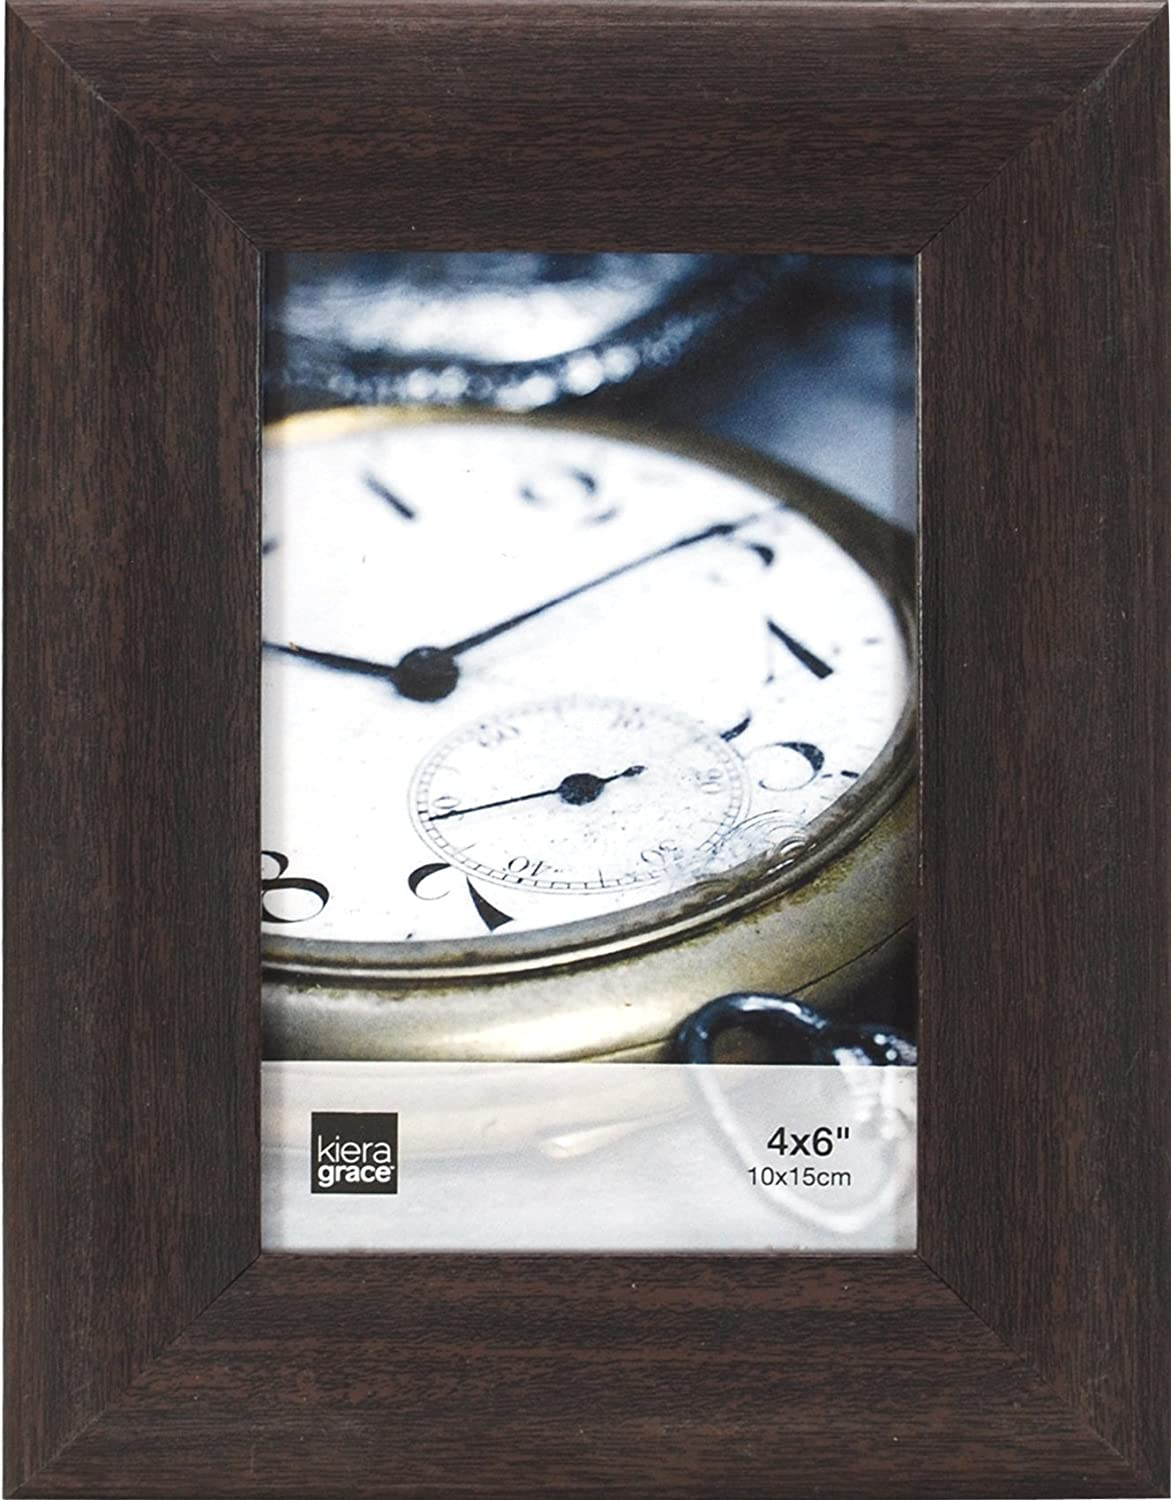 Kiera Grace Gable Picture Frame, 4 by 6-Inch, Wood Grain Espresso Look Textured Finish AZ Home and Gifts PH44092-1